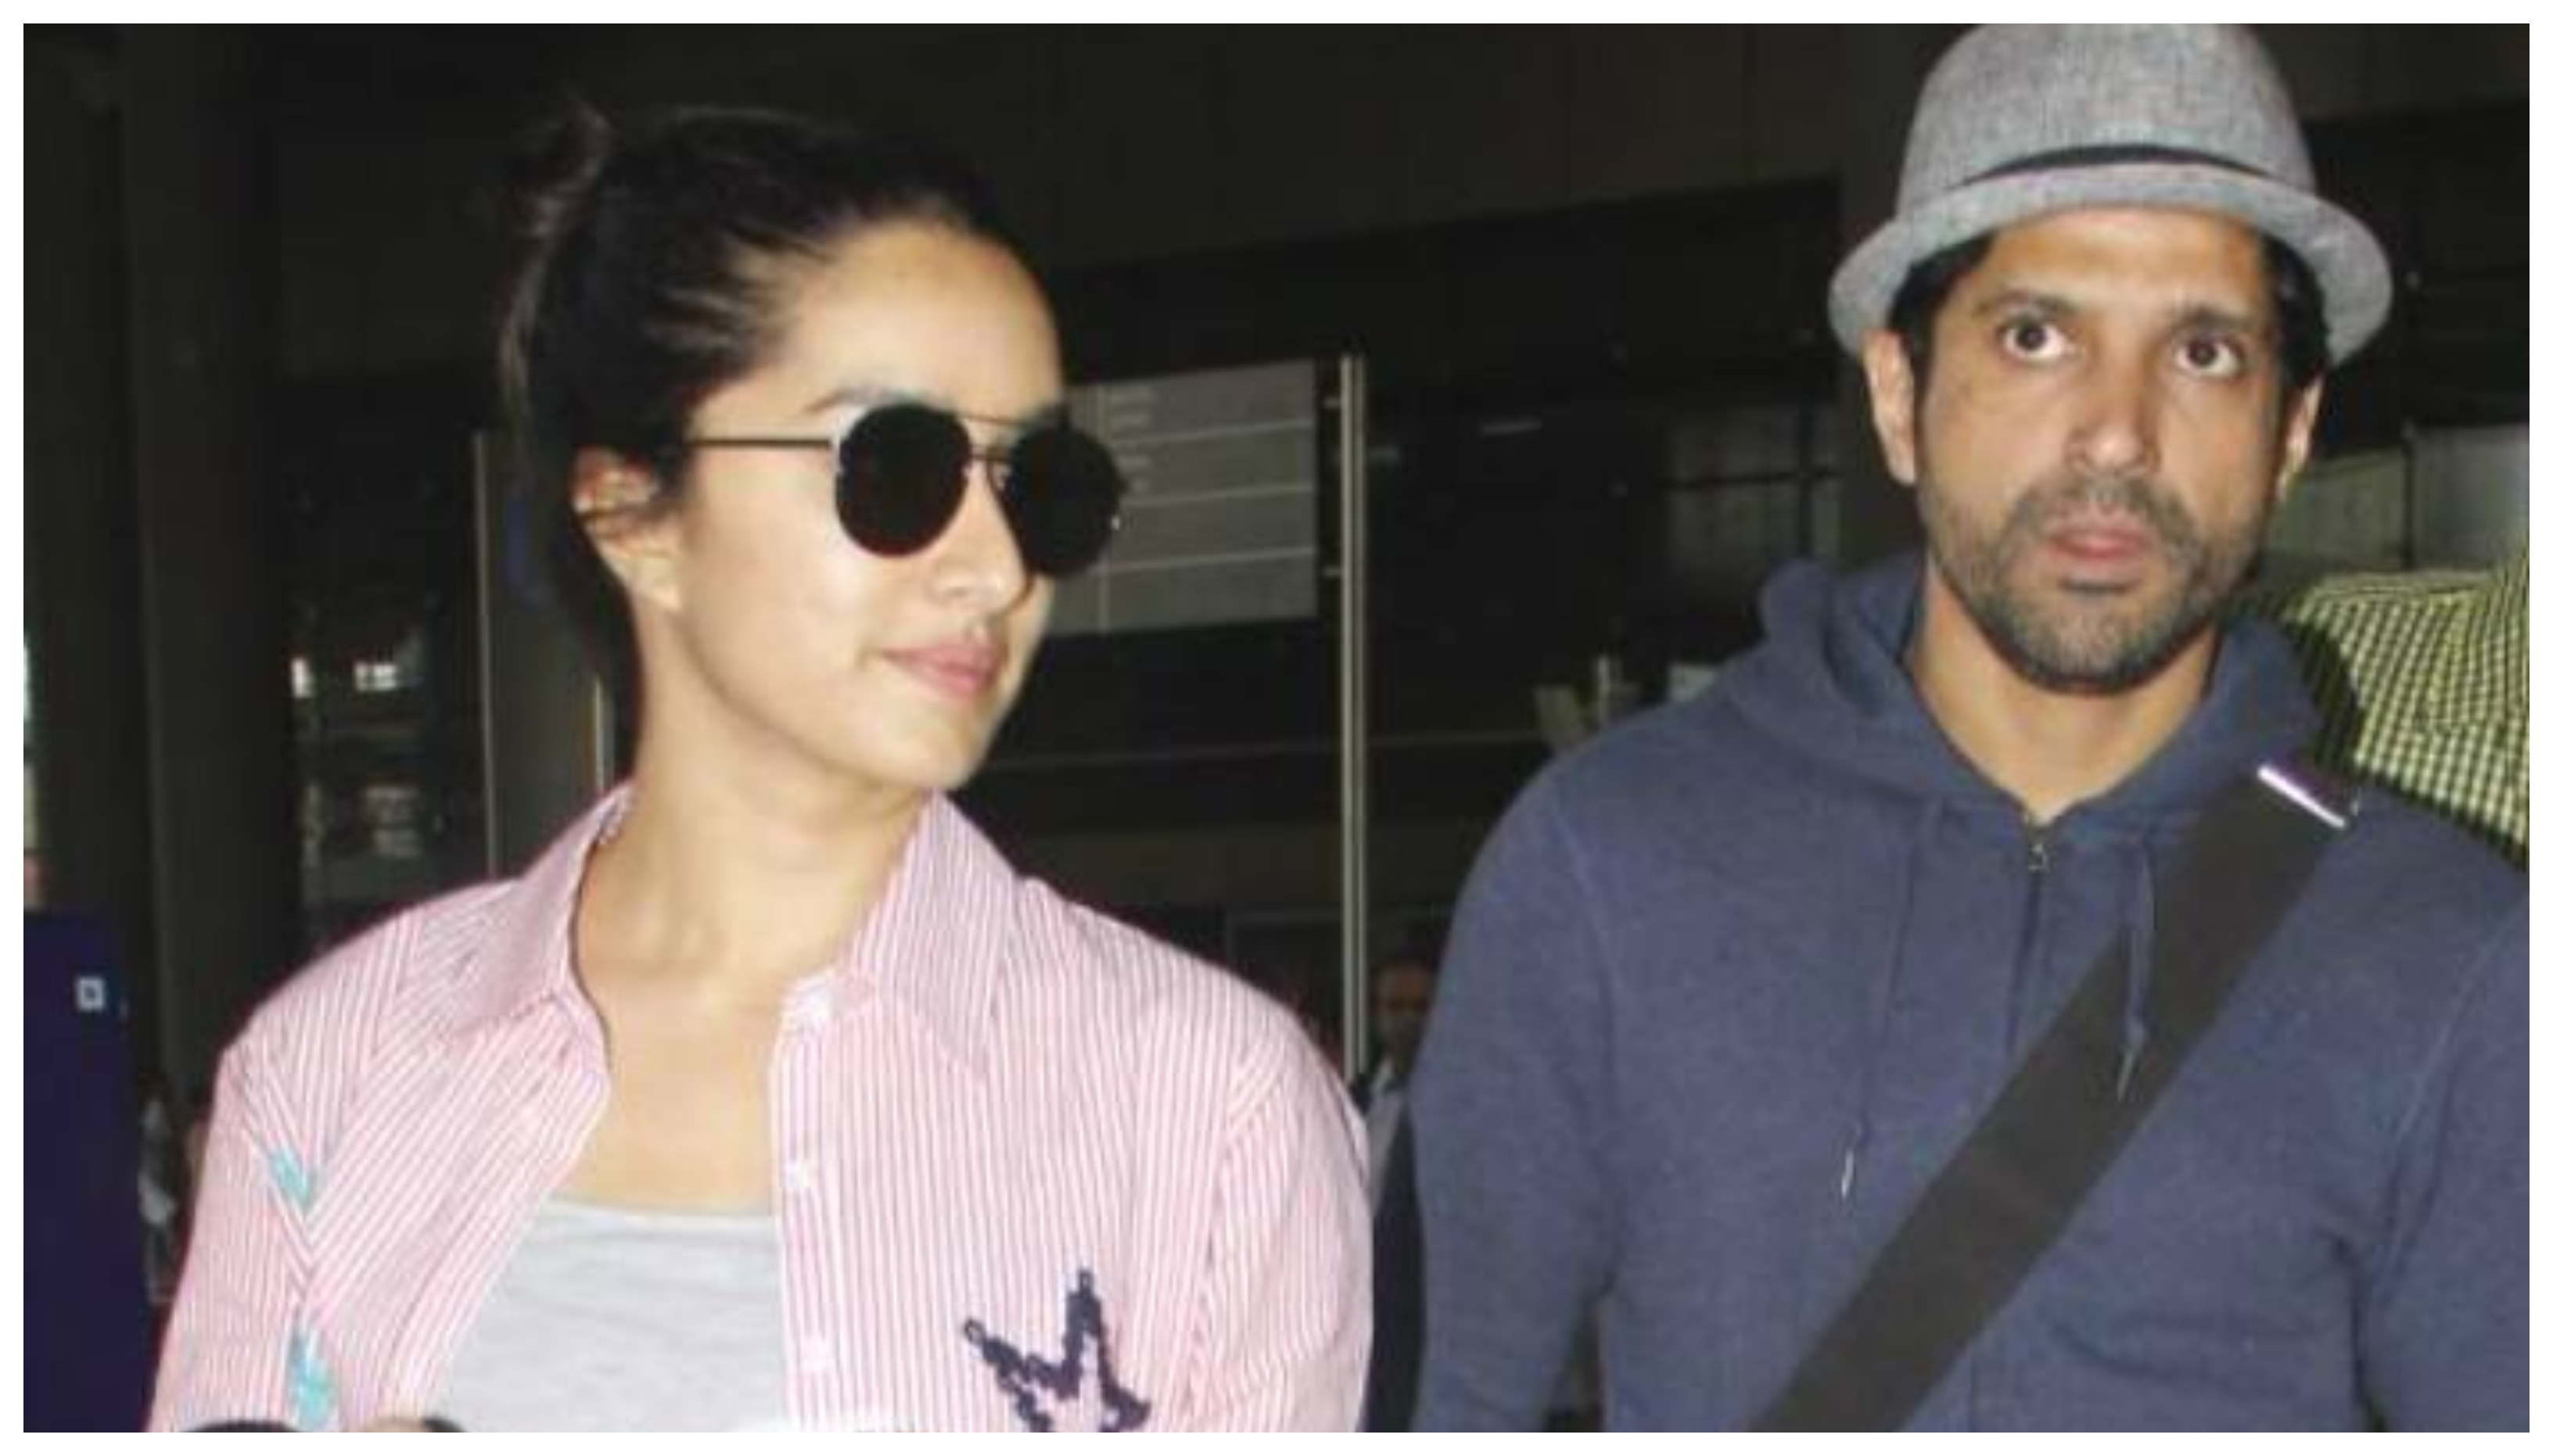 Married FARHAN AKHTAR was stranded on SHRADDHA's heart, SHAKTI KAPOOR took the hand and took the daughter. Funny Jokes